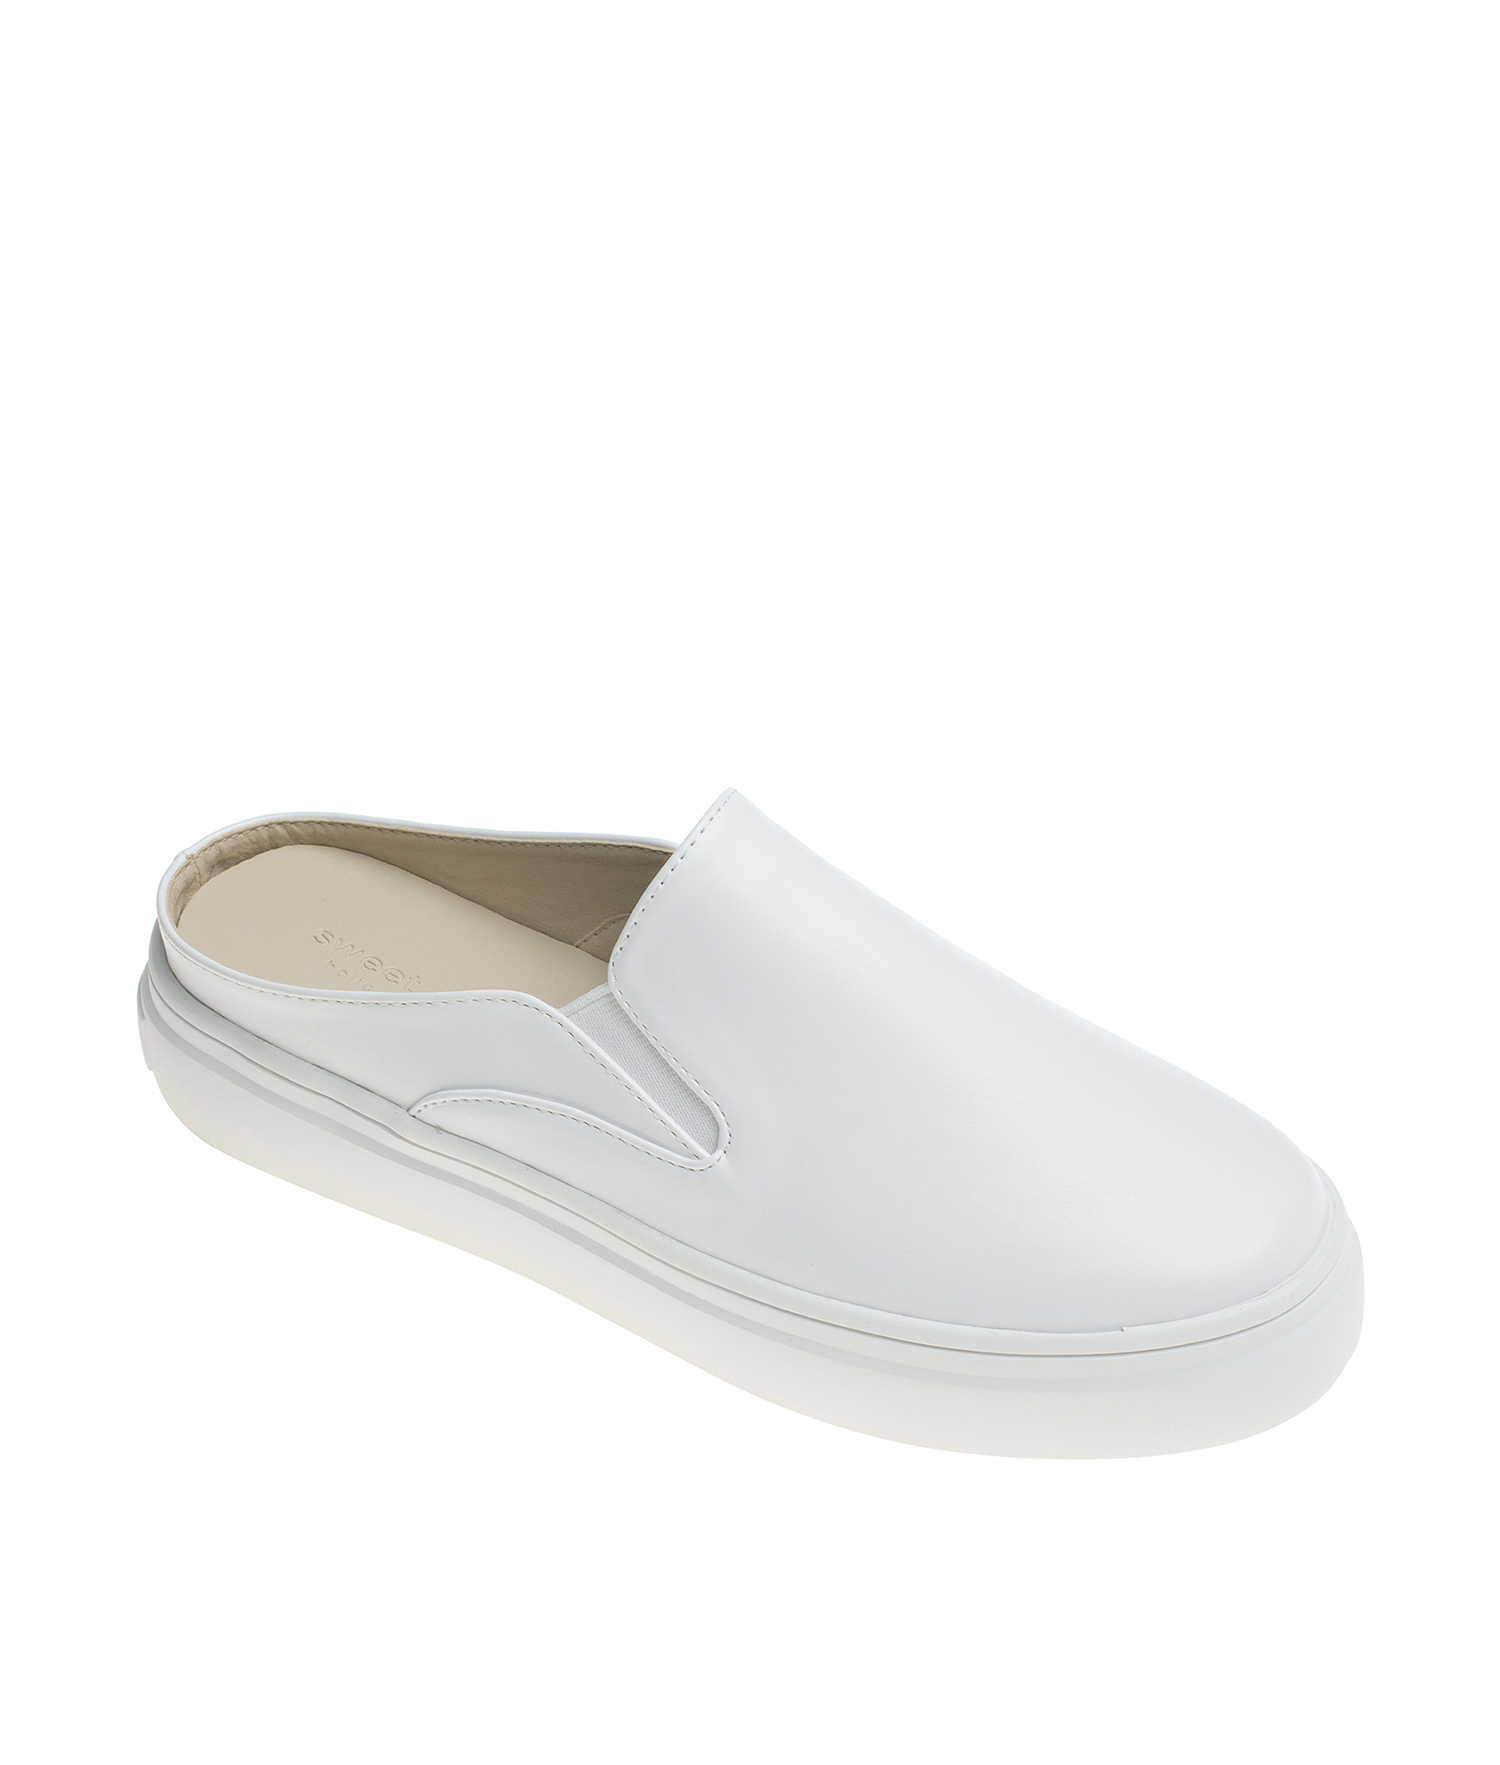 nice shoes usa cheap sale new high Vegan Leather Slip On Mule Sneakers